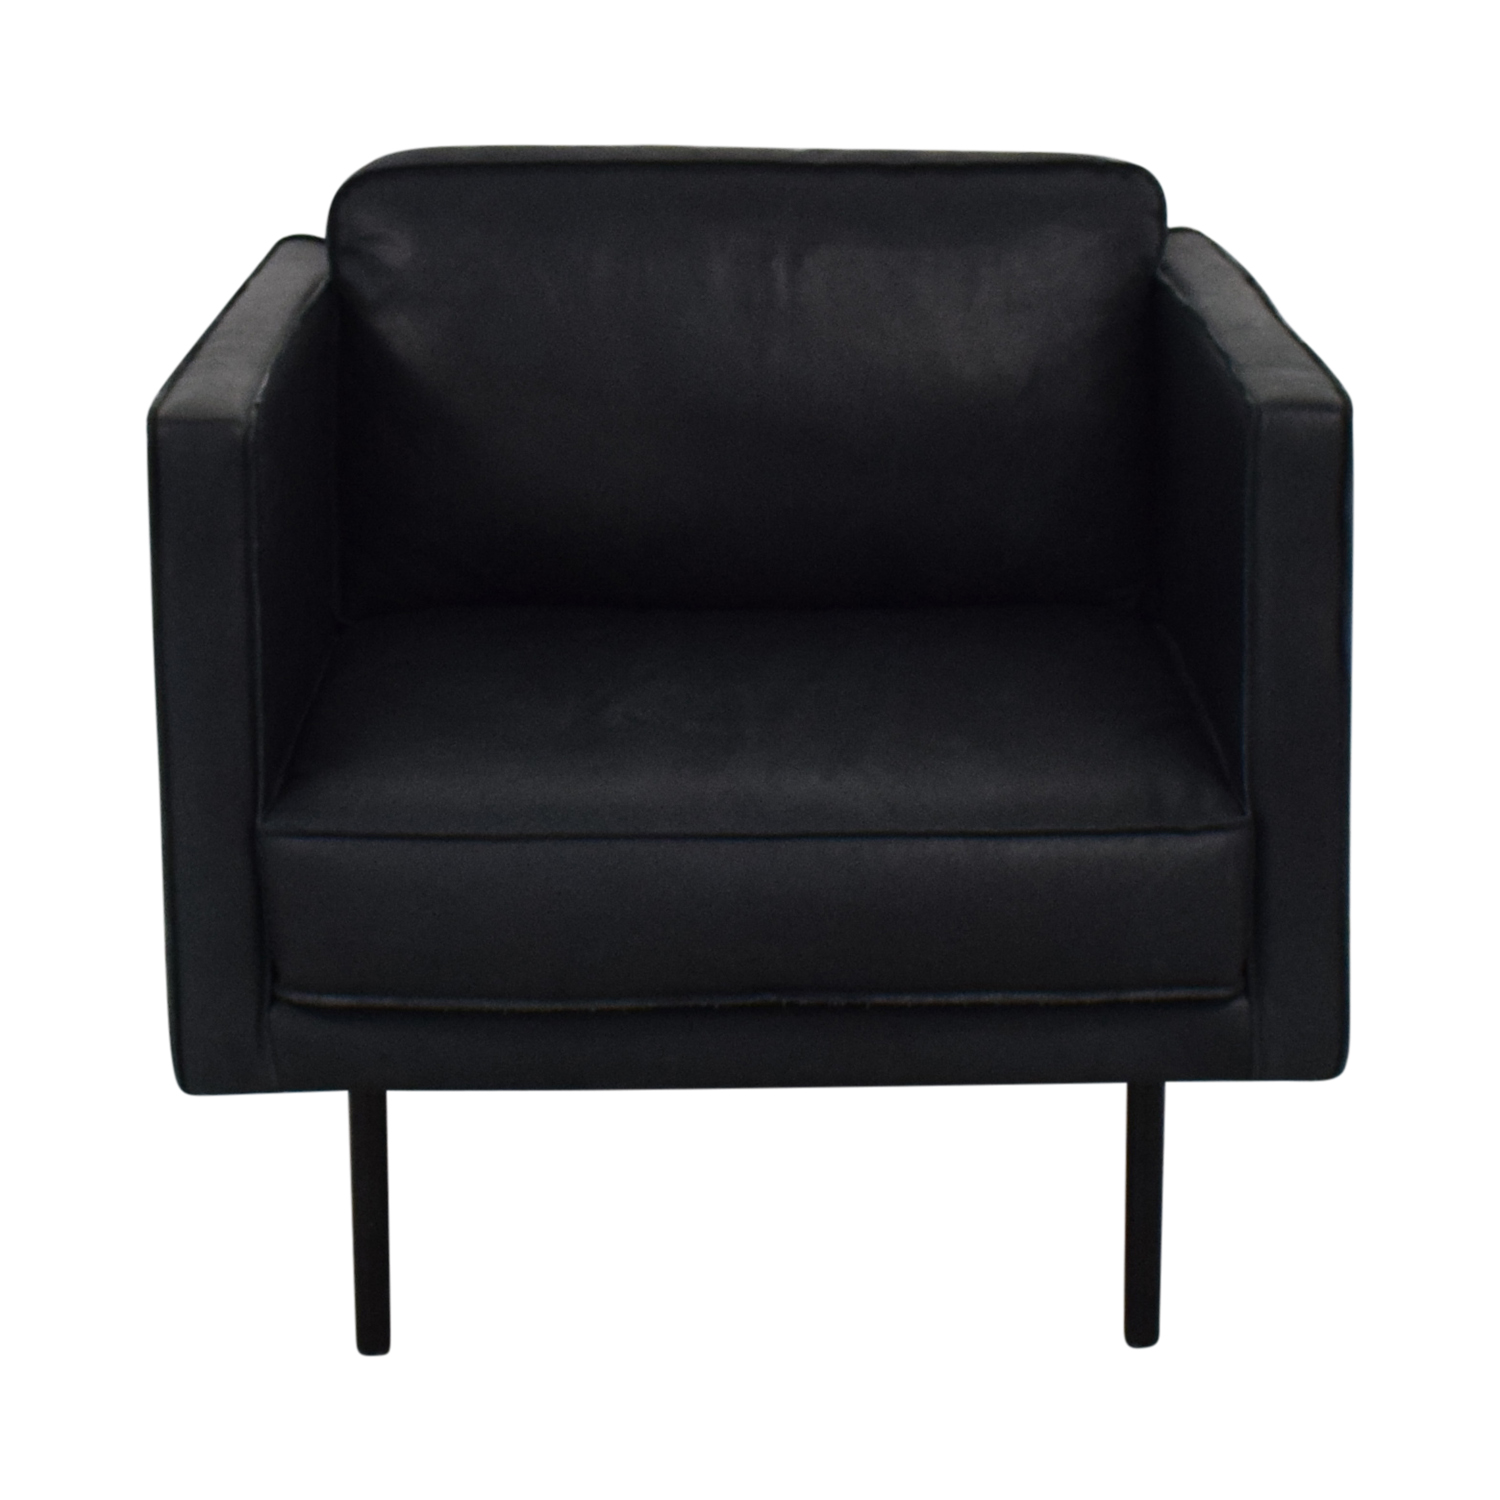 Article Article Capilano Black Accent Chair Chairs